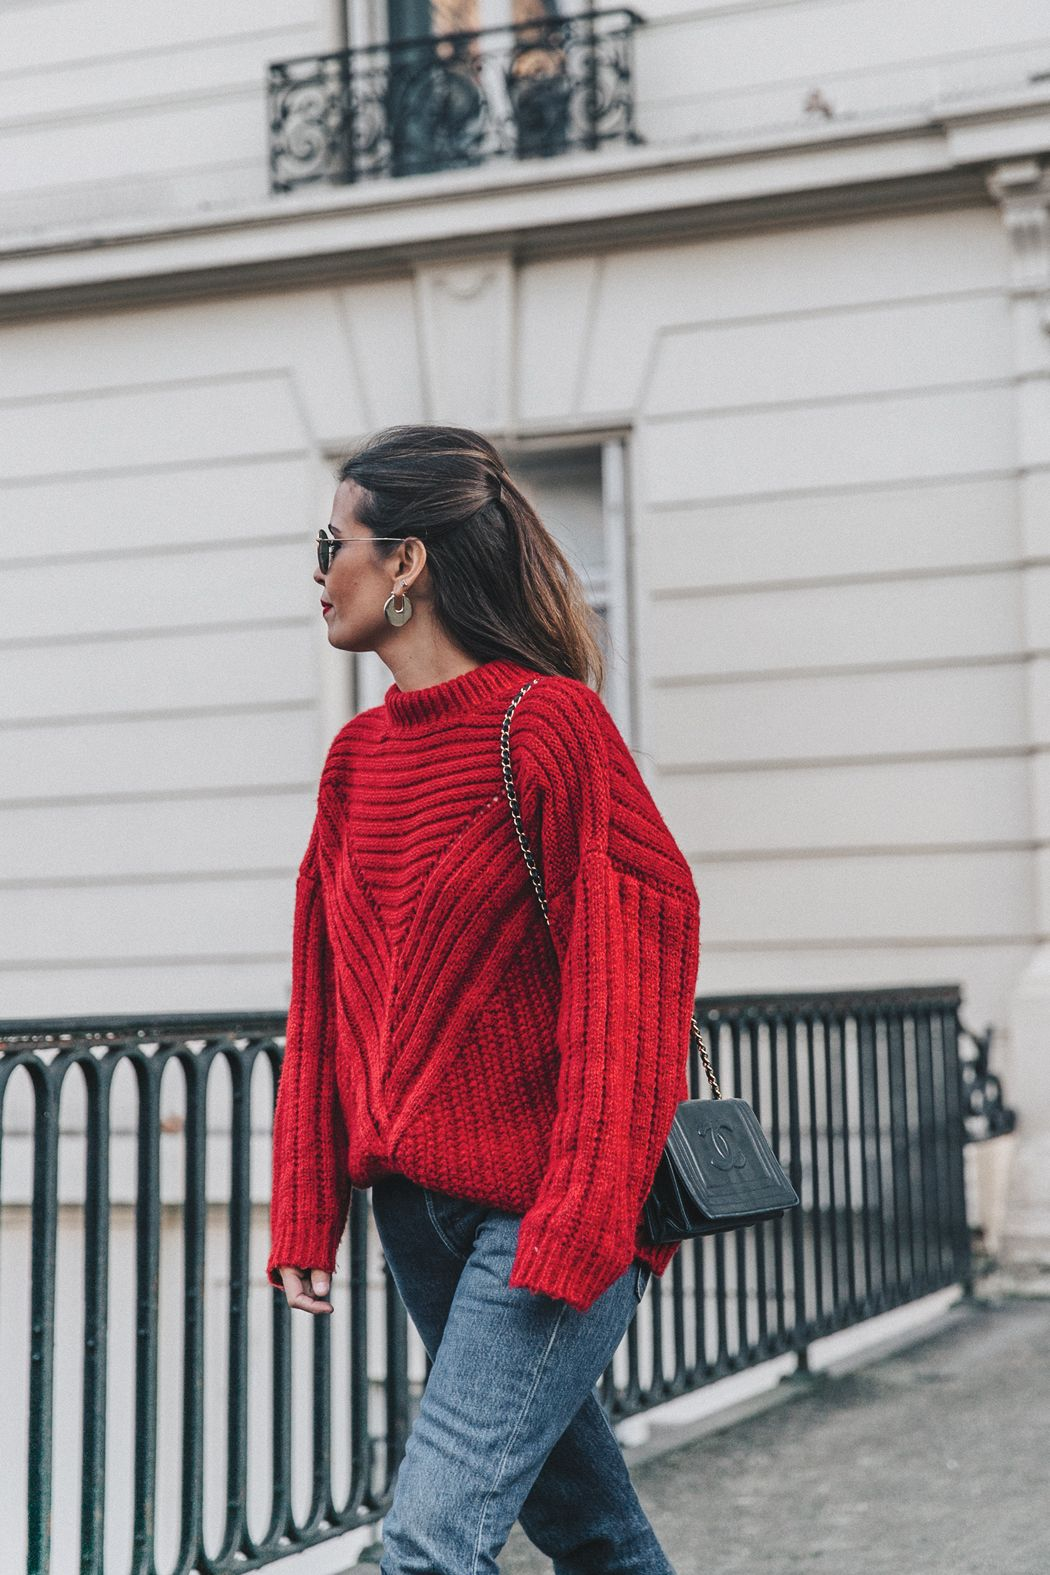 62ccb5d4b57 RED-KNITWEAR-Levis-Jeans-Red Boots-Outfit-Street Style-Levis Vintage ...